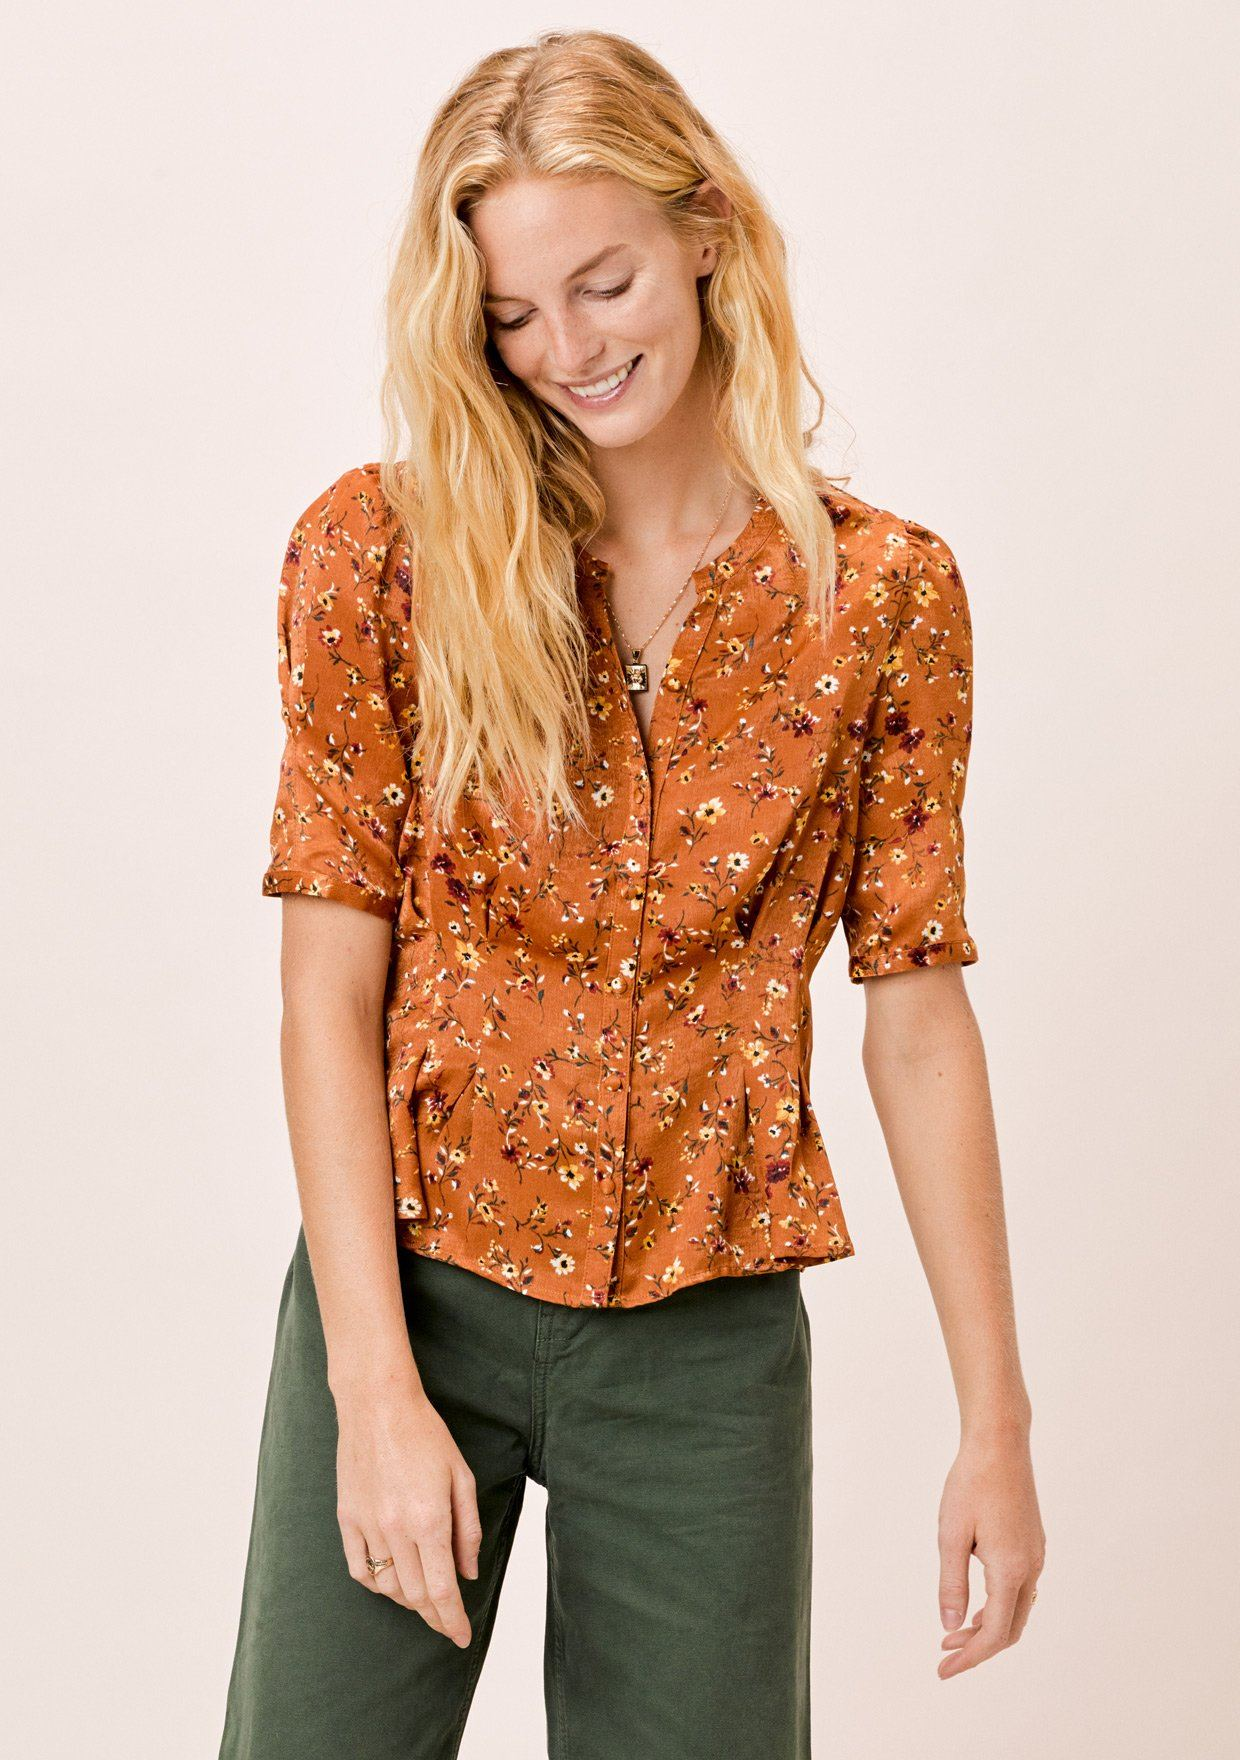 [Color: Caramel] Lovestitch caramel floral printed, buttoned front, pleated blouse with pleated, elbow sleeve.